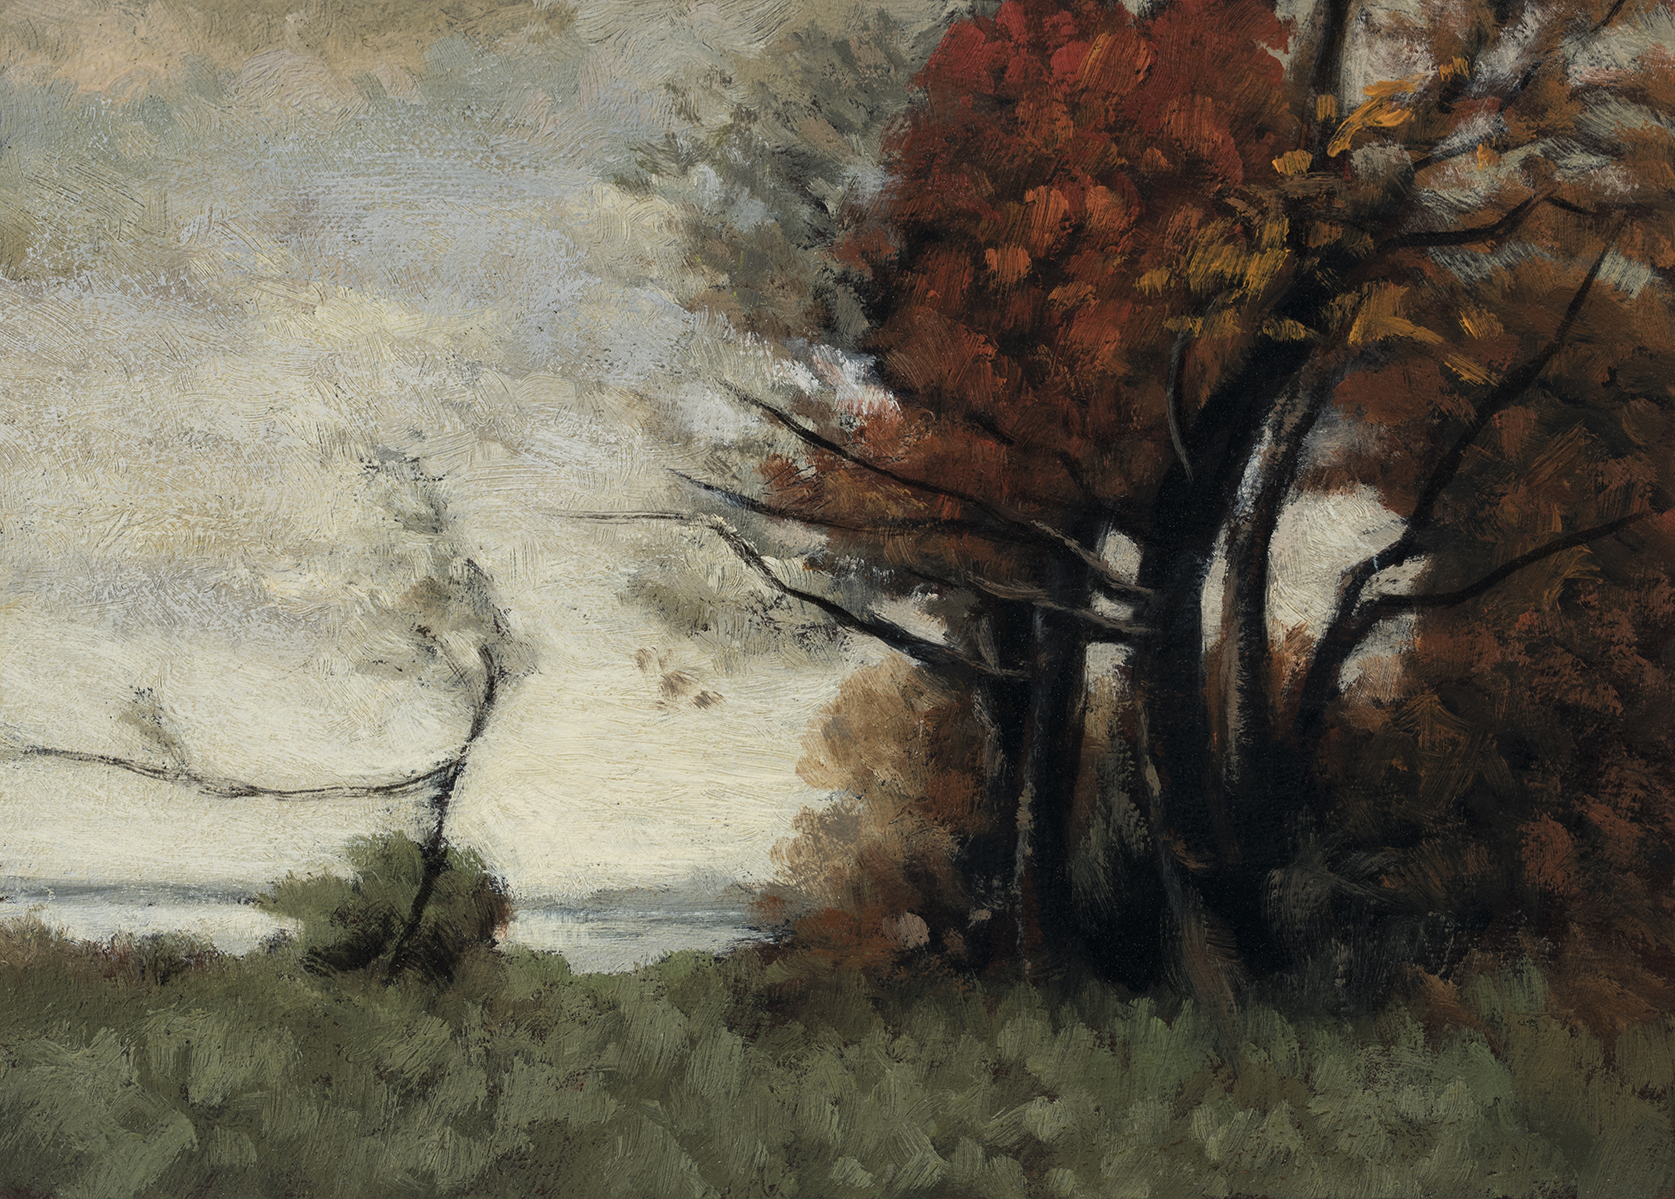 Study after Paul Desire Trouillebert 'Autumn' by M Francis McCarthy - 5x7 Oil on Wood Panel